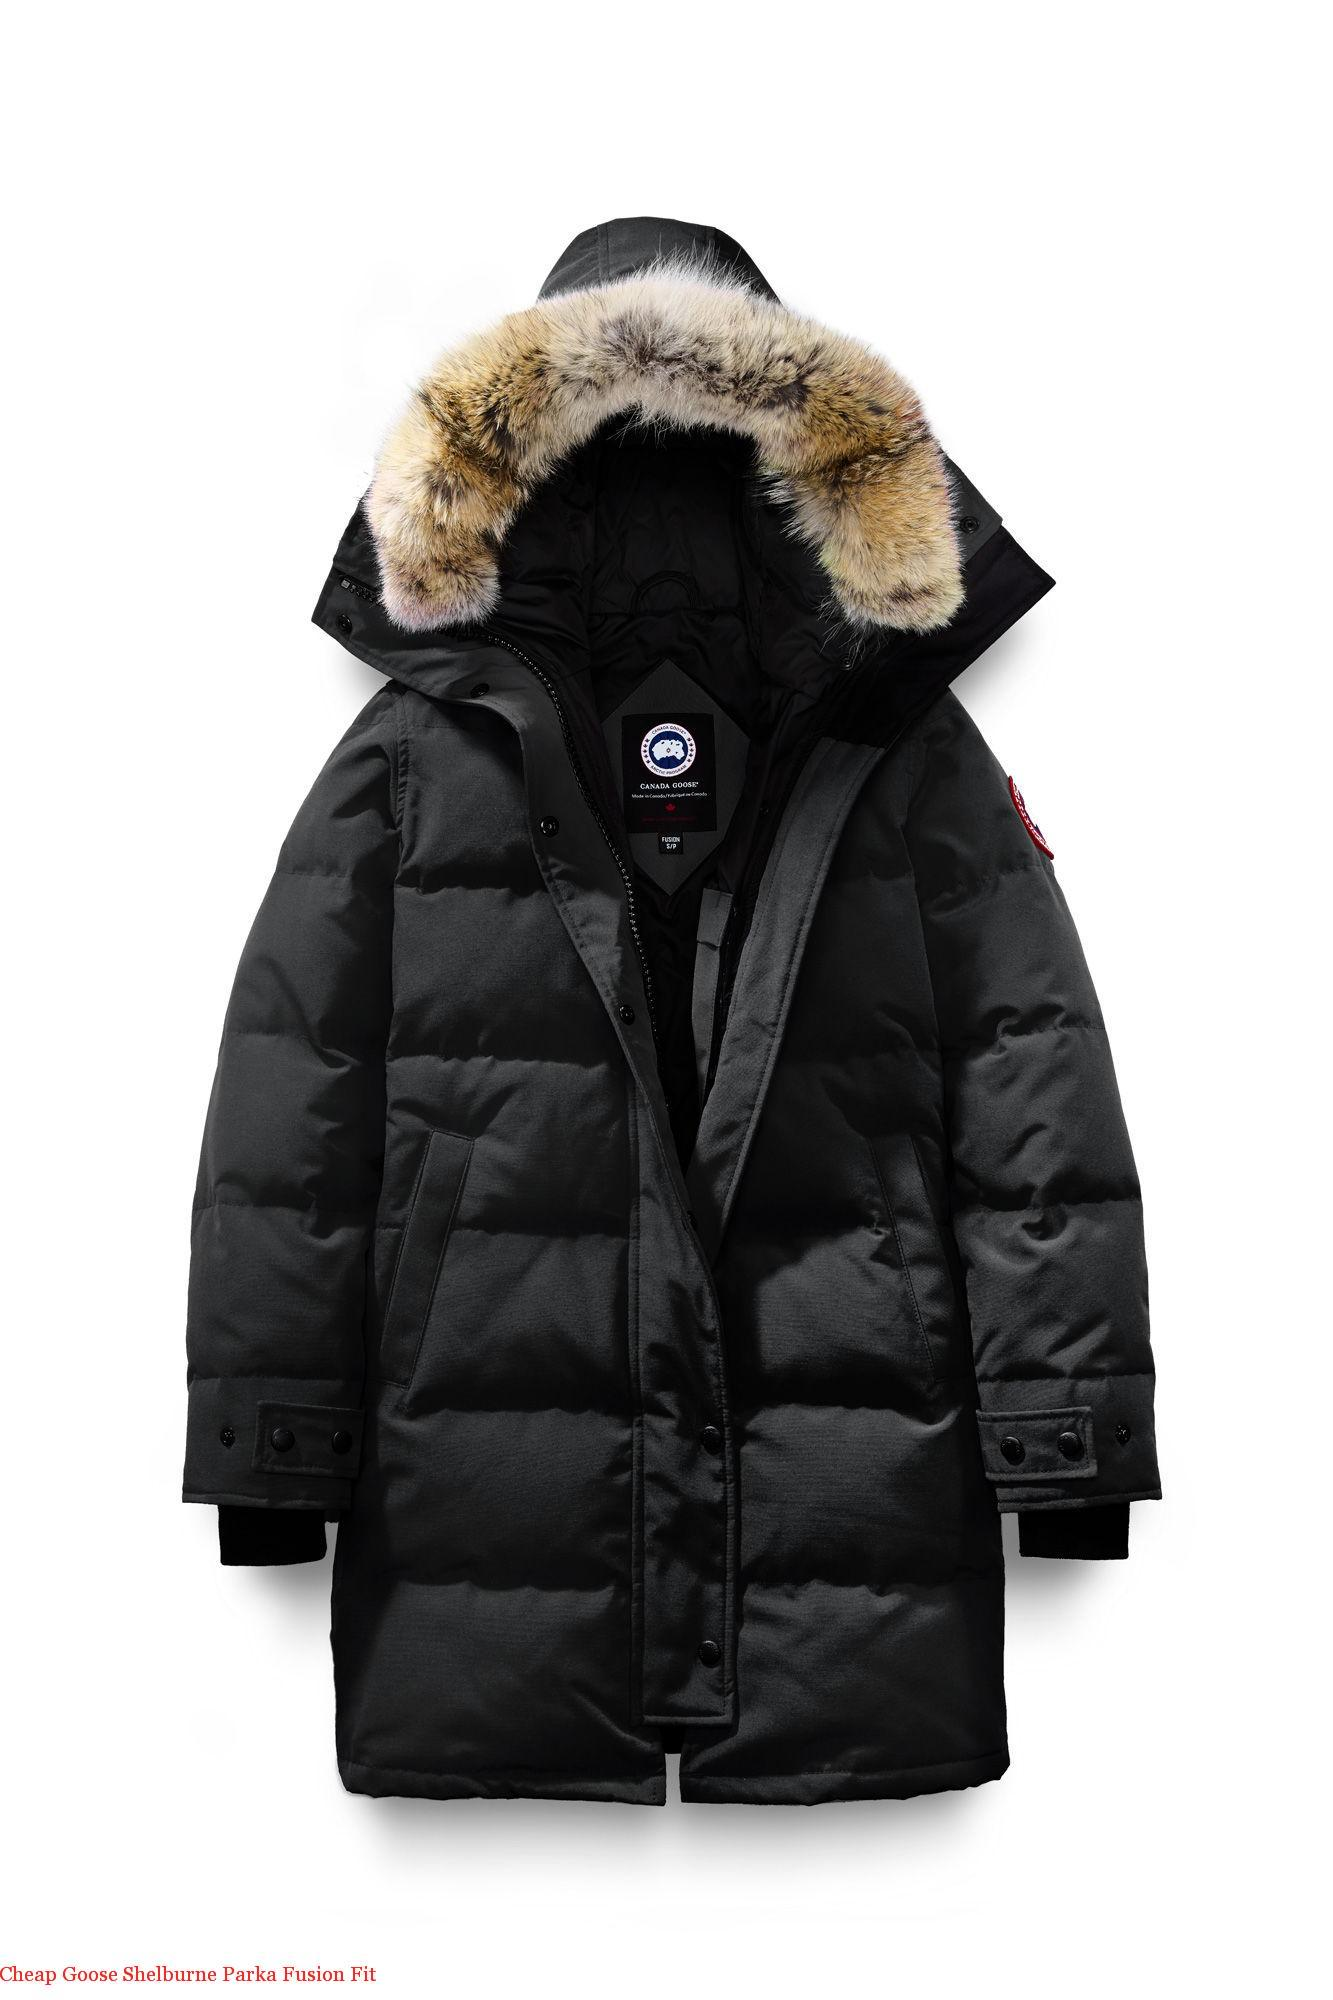 Cheap Goose Shelburne Parka Fusion Fit